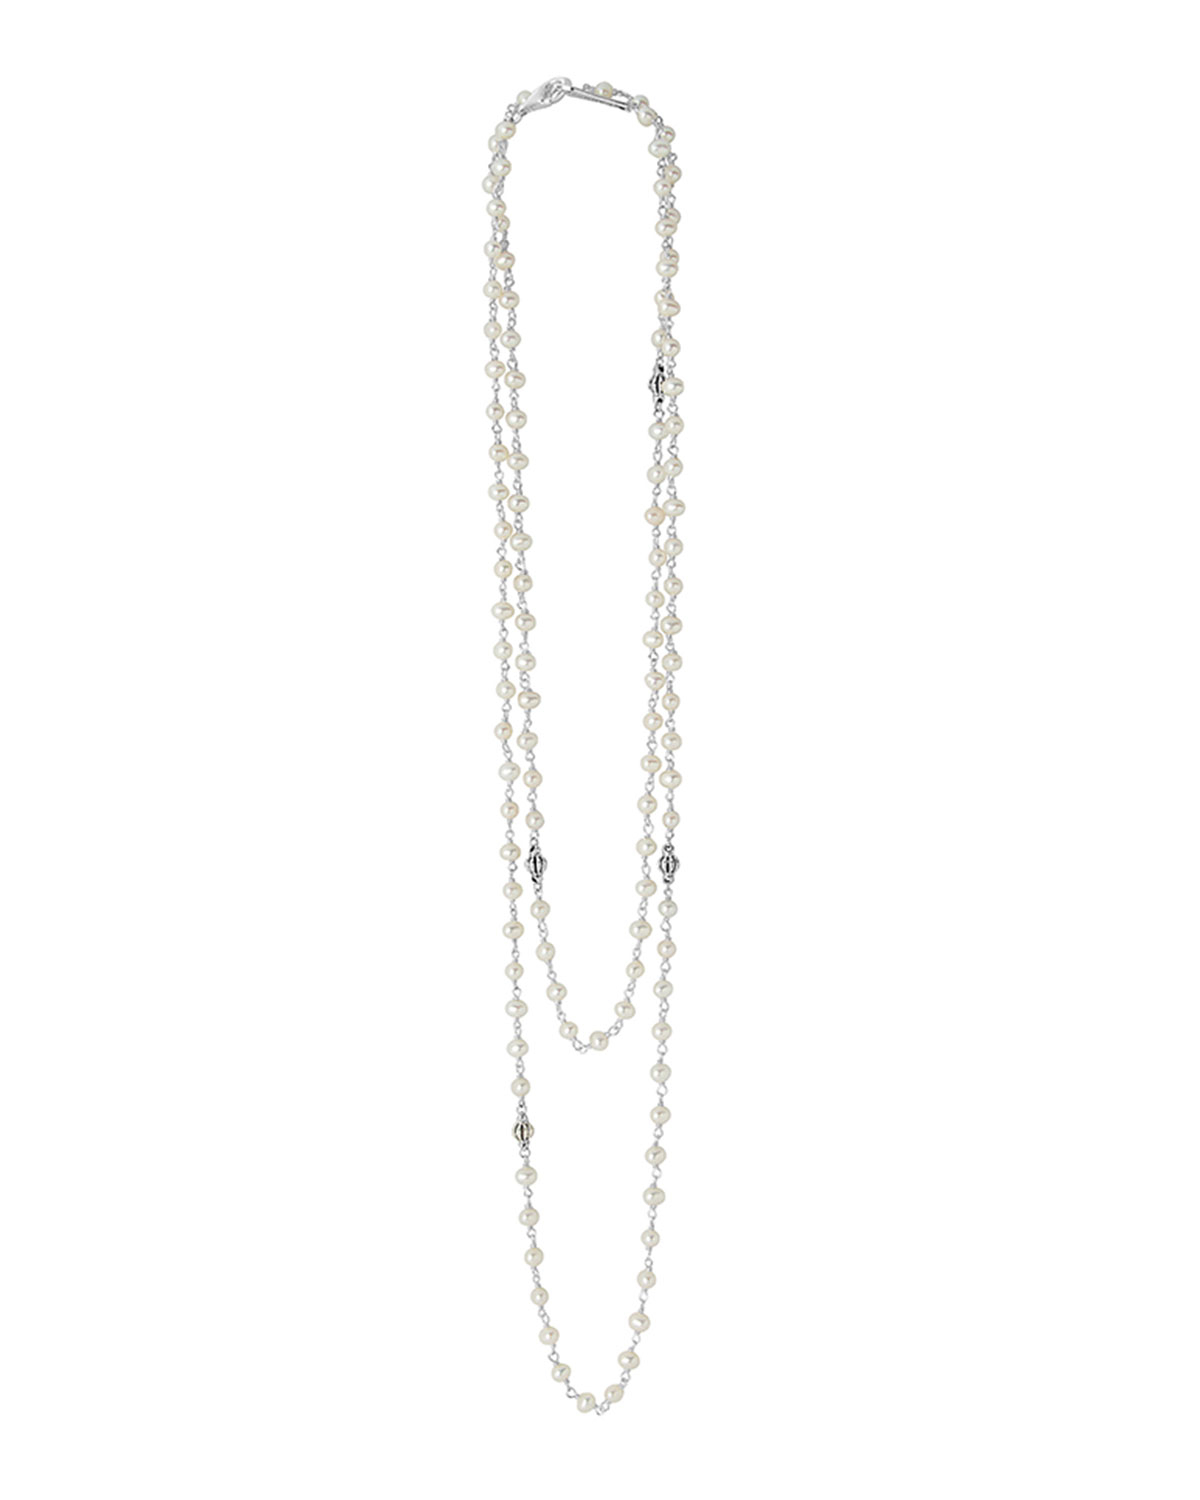 Luna Pearl Necklace with Sterling Silver, 36